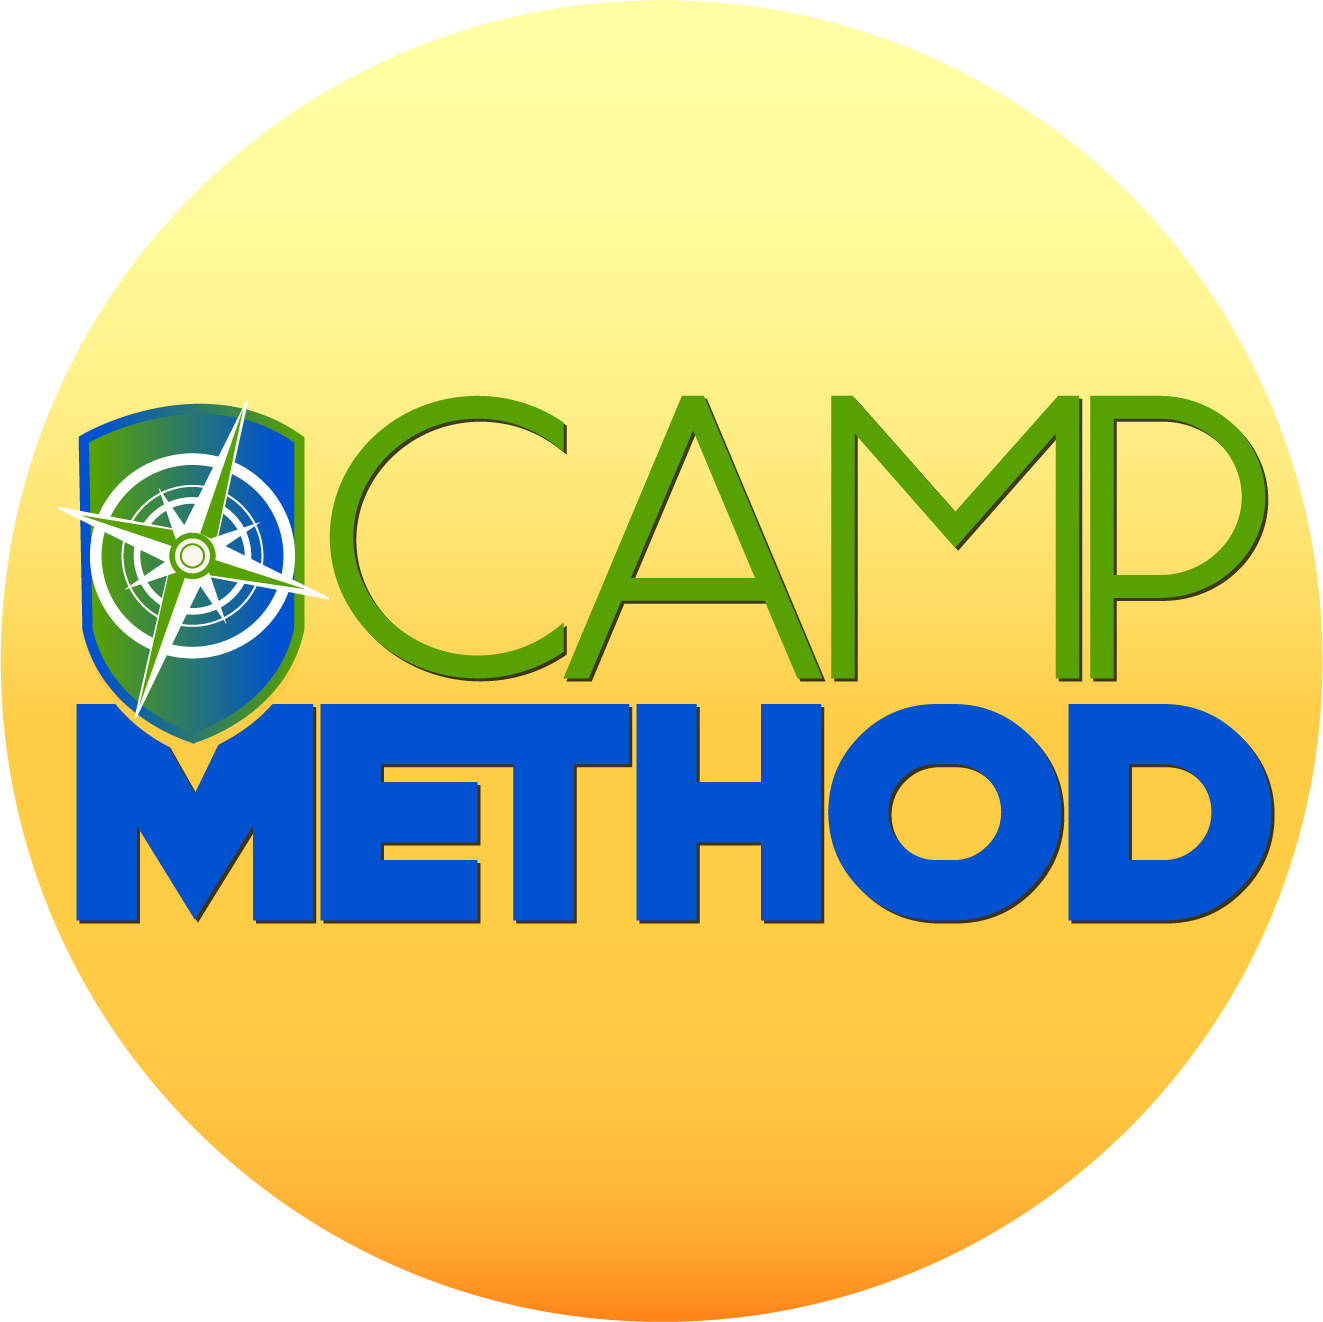 Camp Method